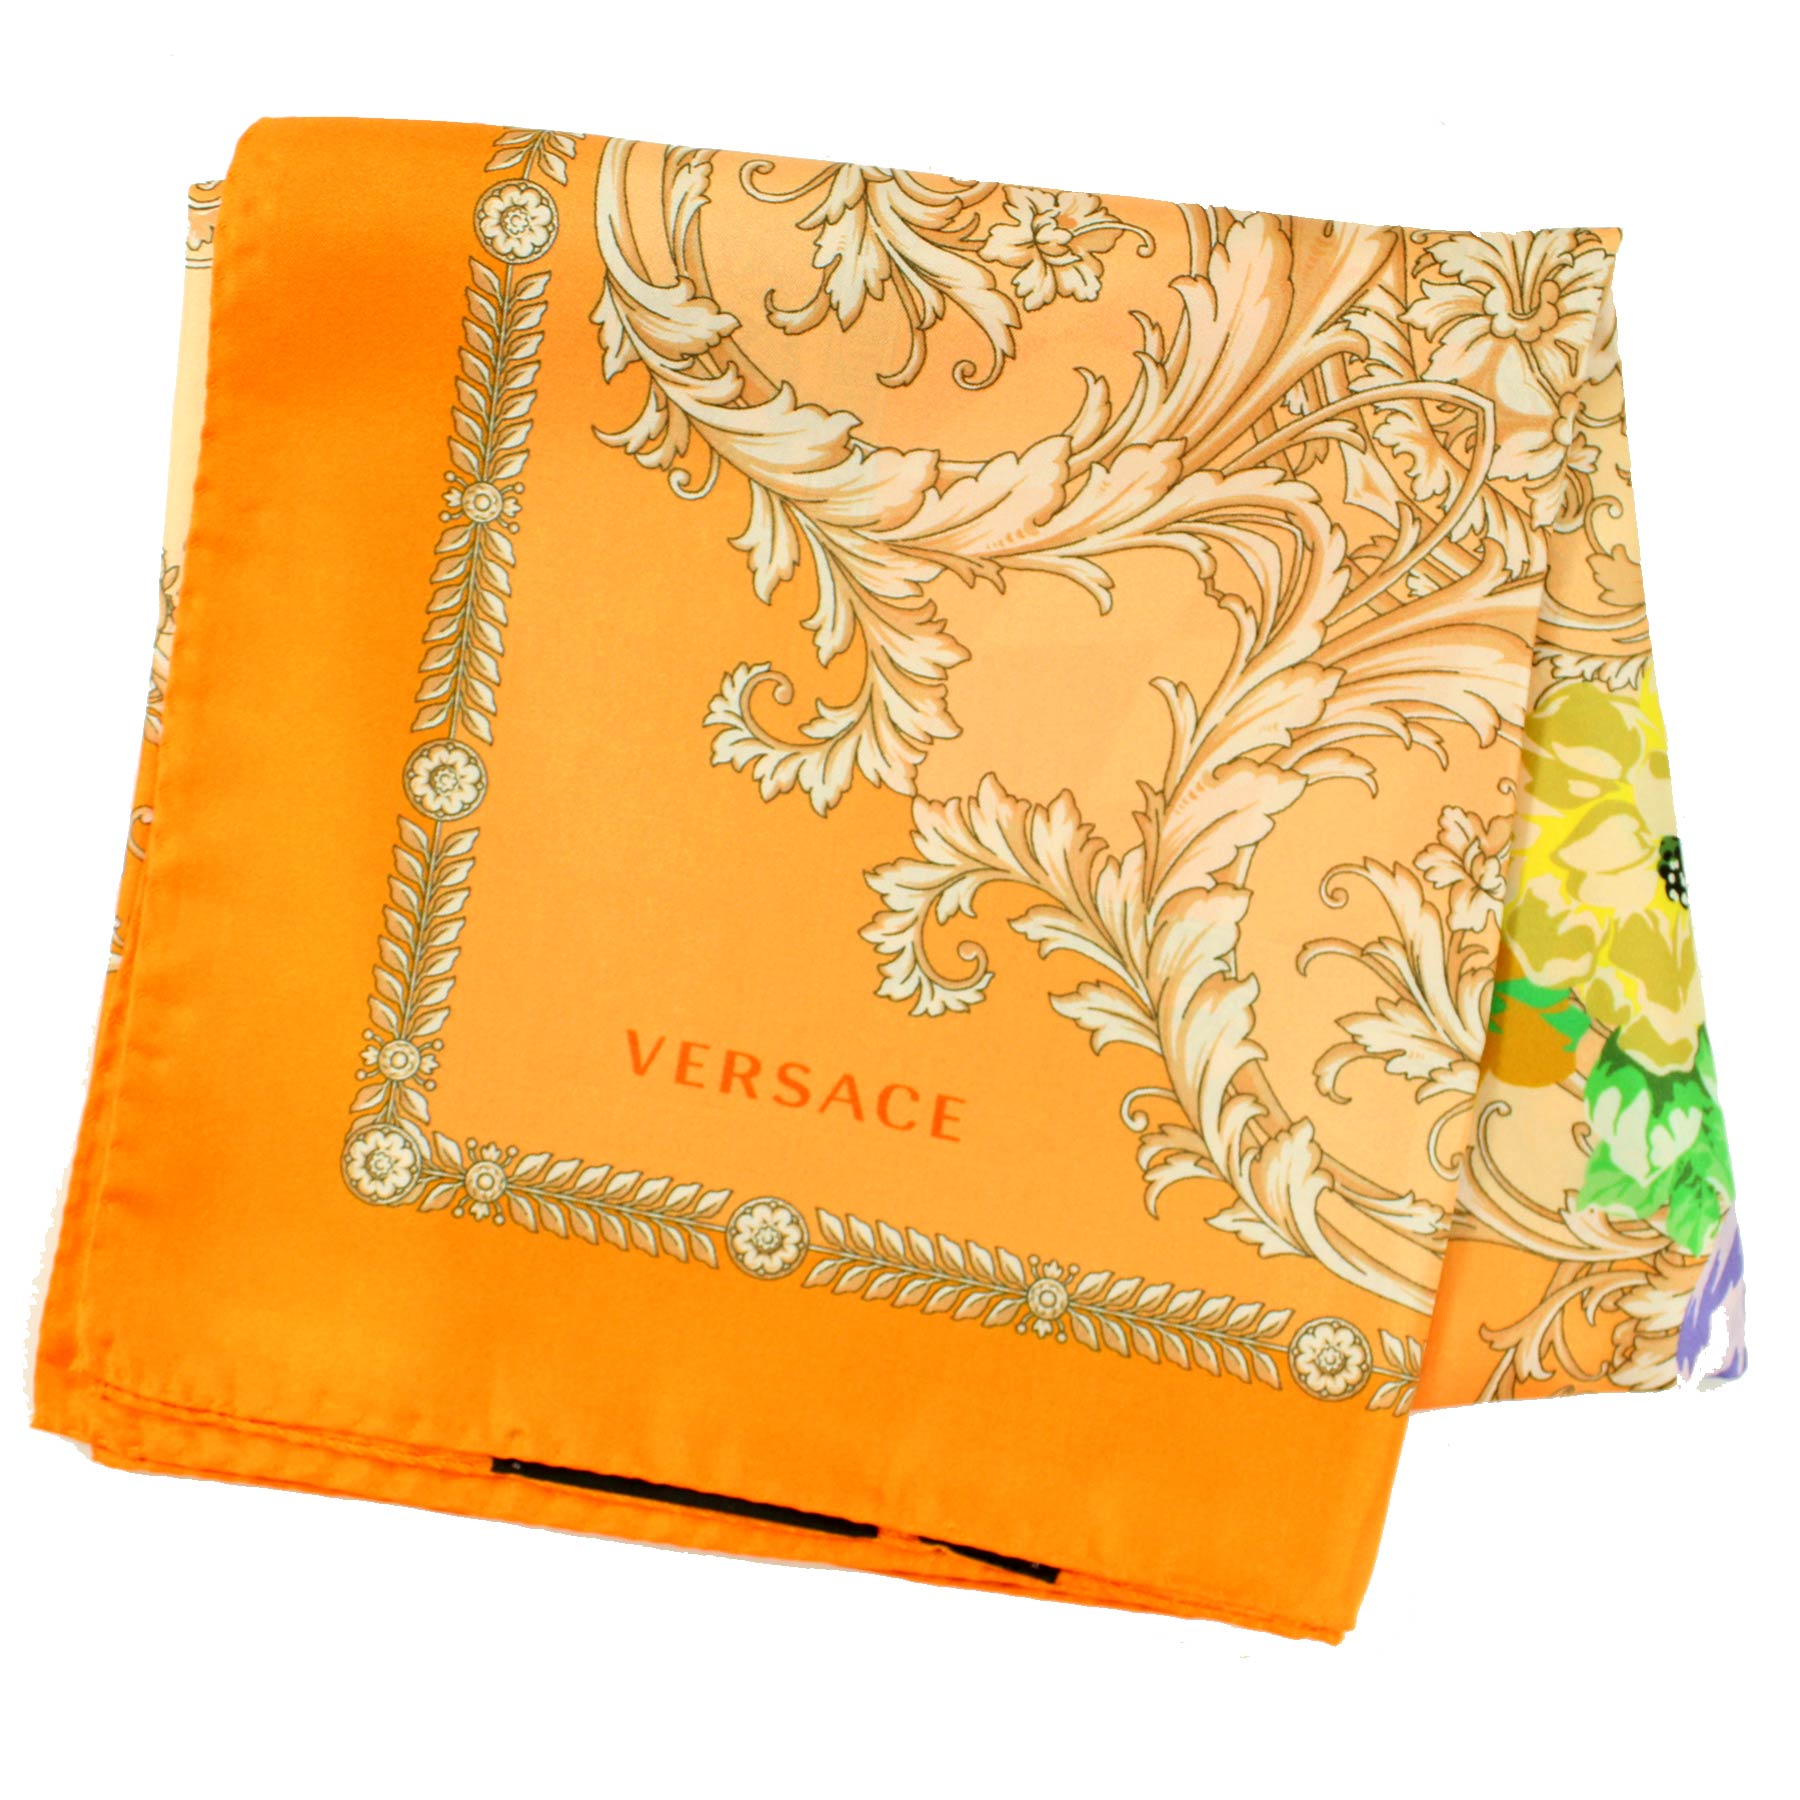 Versace Scarf Peach-Orange Cream Floral New